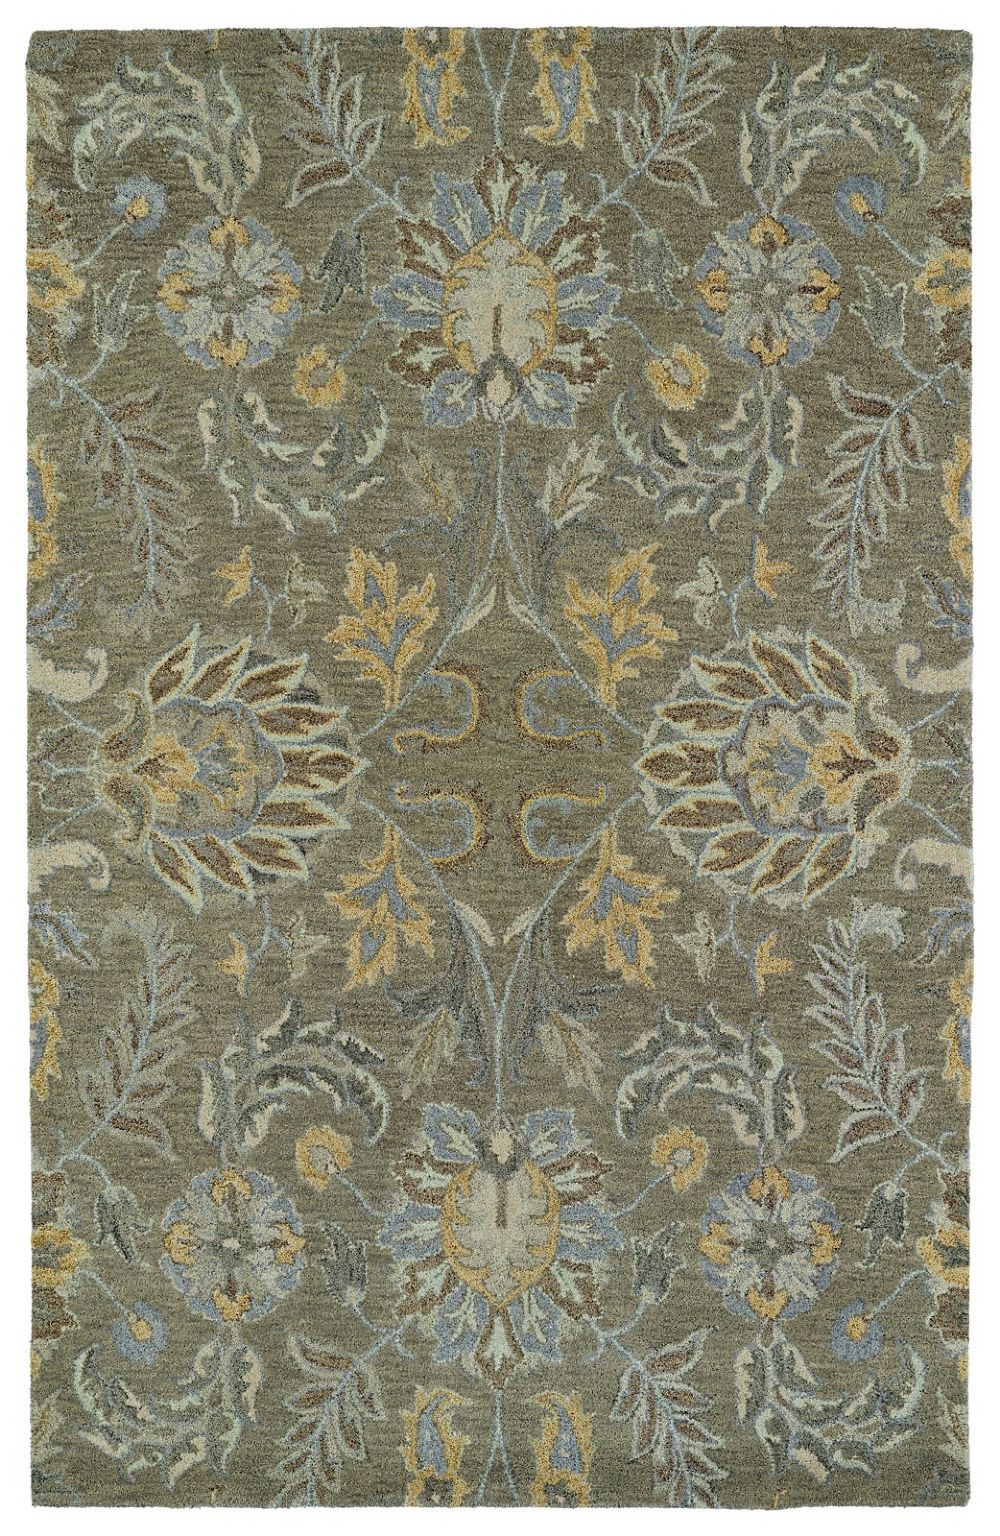 kaleen helena country & floral area rug collection